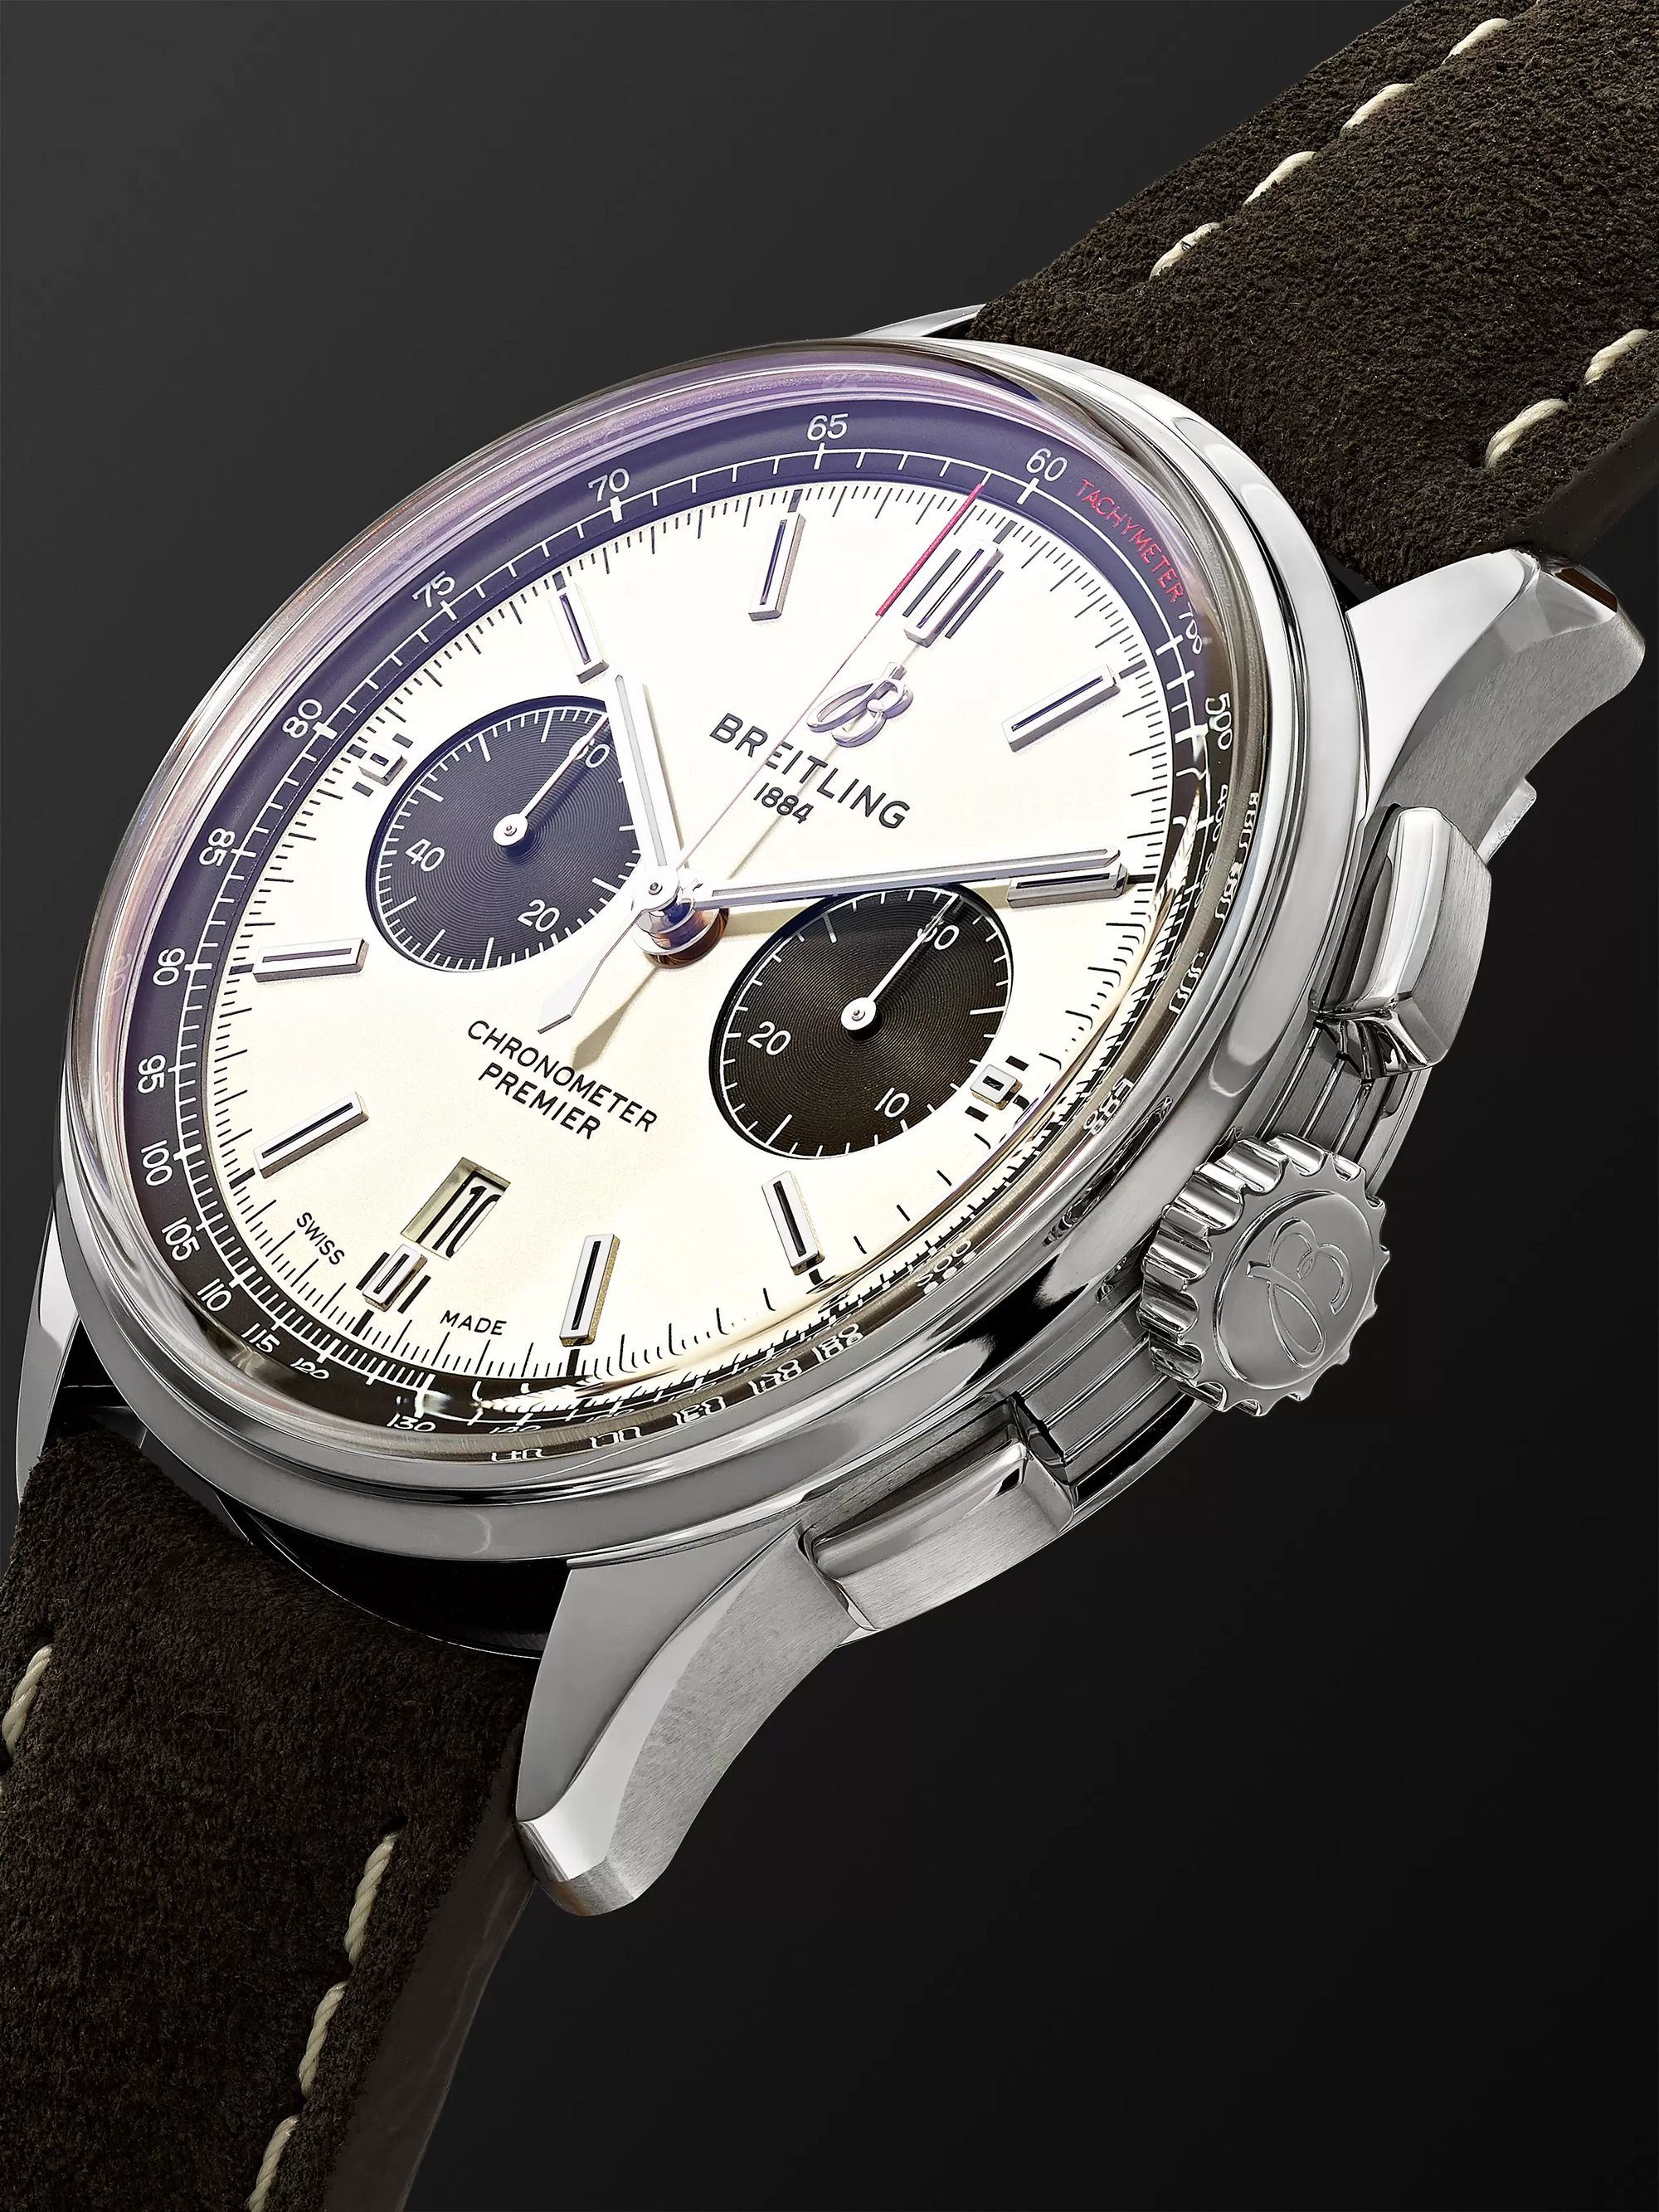 Breitling Premier B01 Chronograph 42mm Stainless Steel and Nubuck Watch, Ref. No. AB0118221G1X1